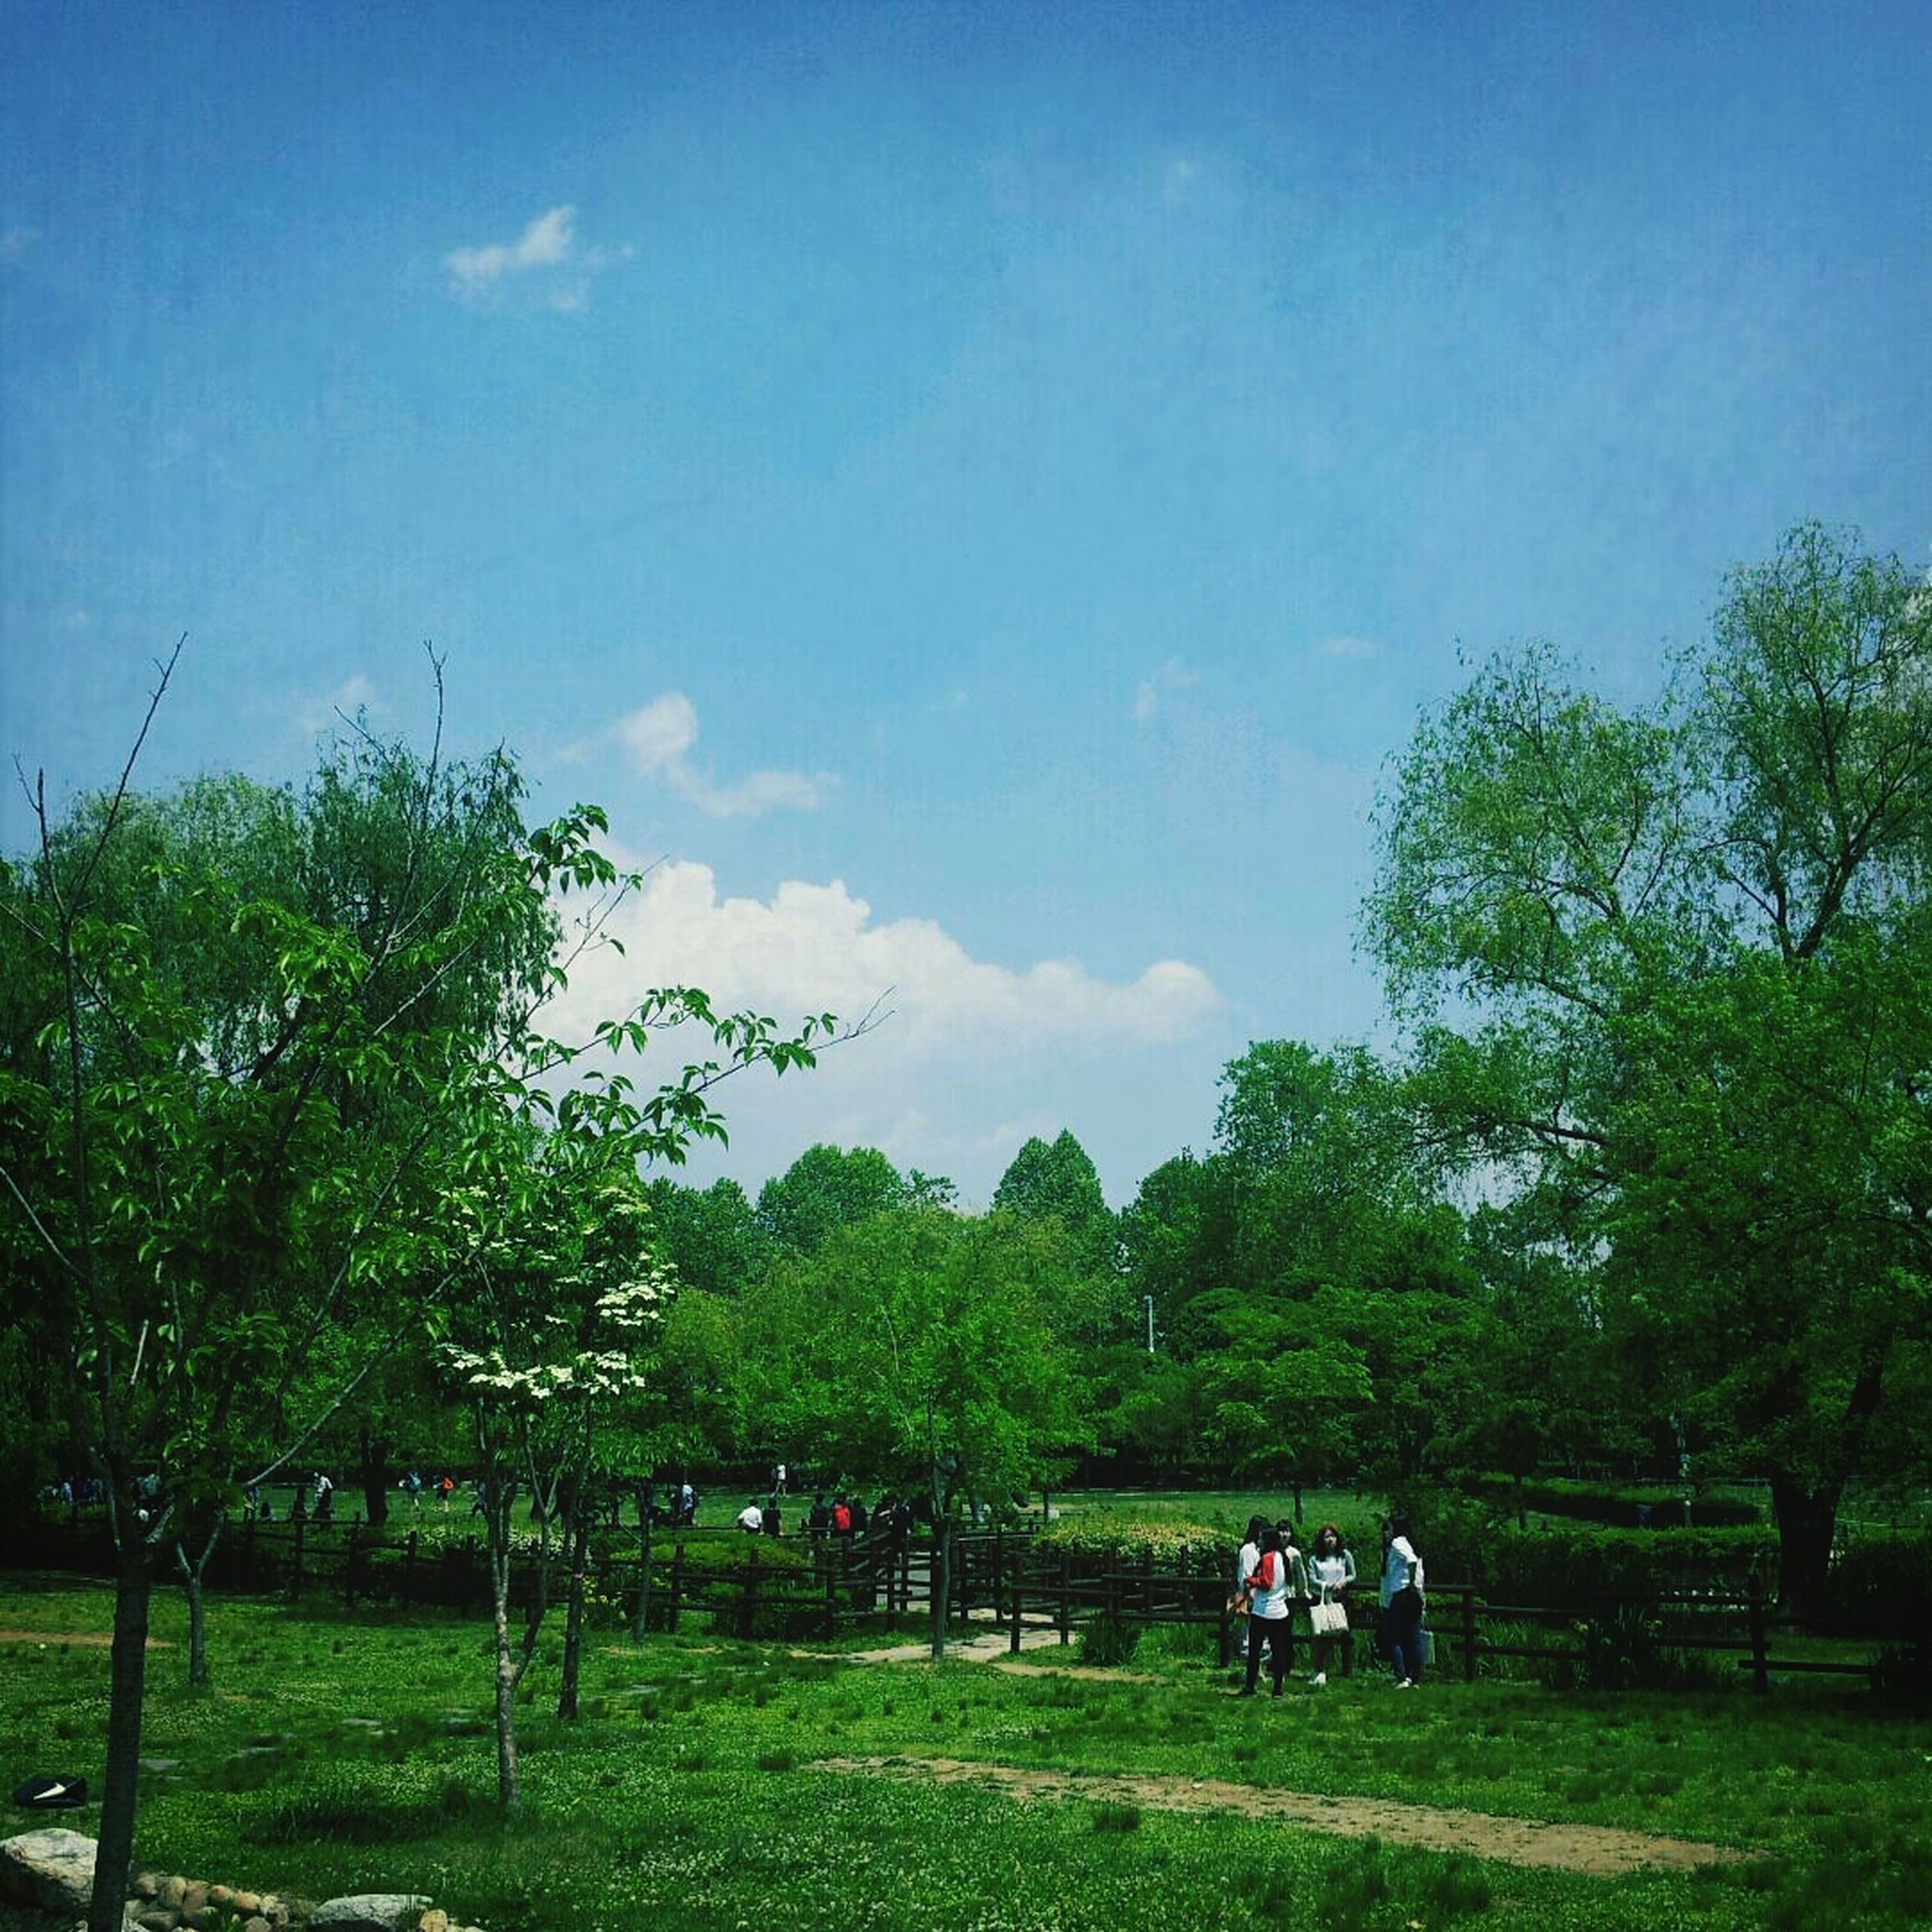 tree, grass, green color, sky, field, grassy, growth, men, park - man made space, landscape, nature, leisure activity, lifestyles, tranquility, person, cloud - sky, tranquil scene, land vehicle, beauty in nature